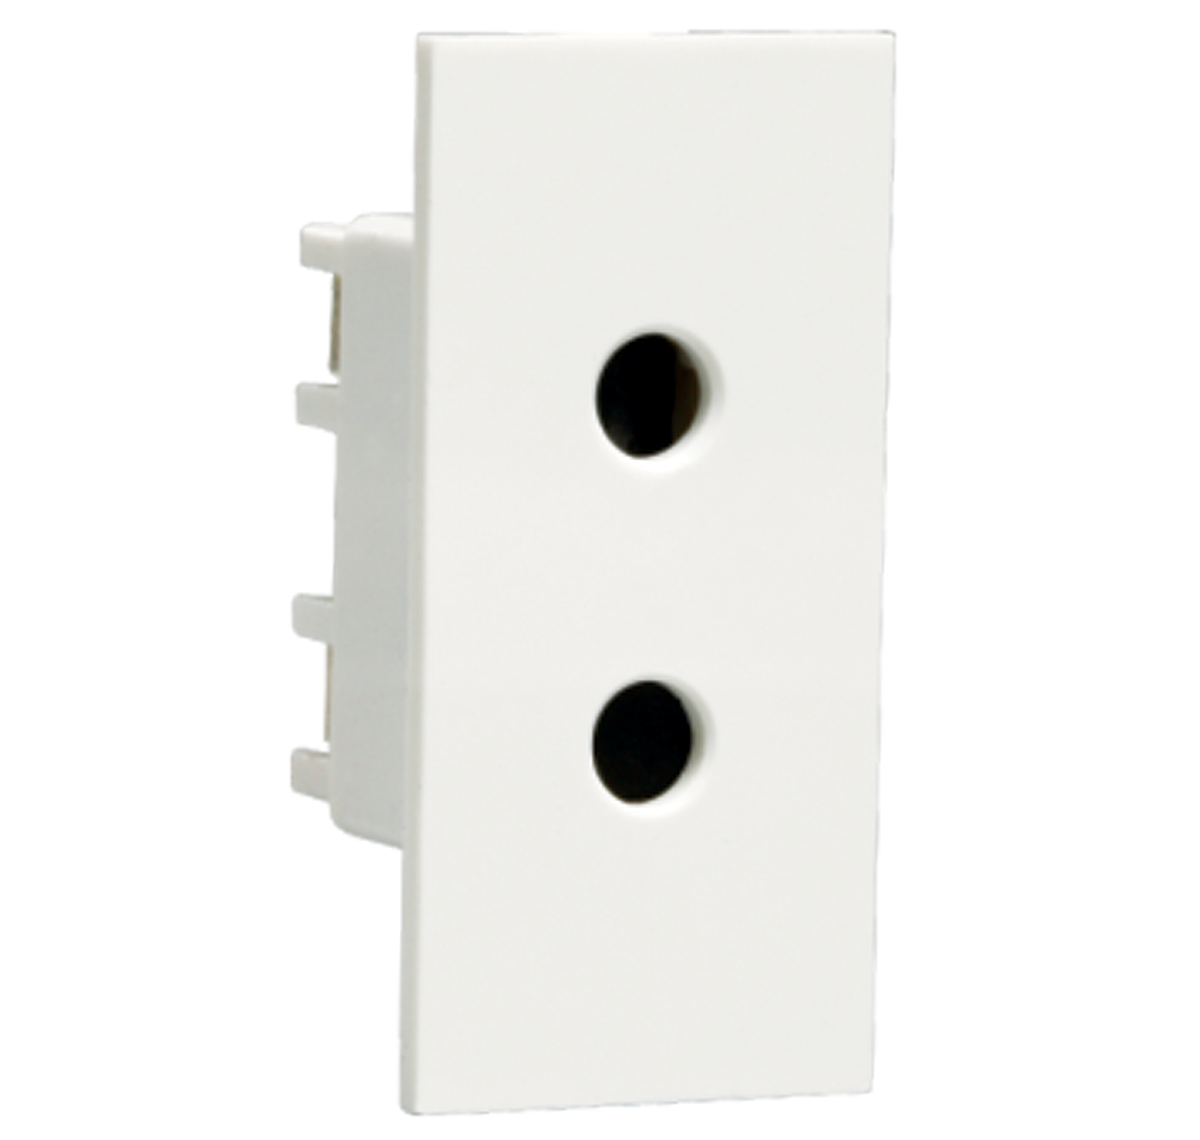 Crabtree - 6 A 2 pin shuttered socket